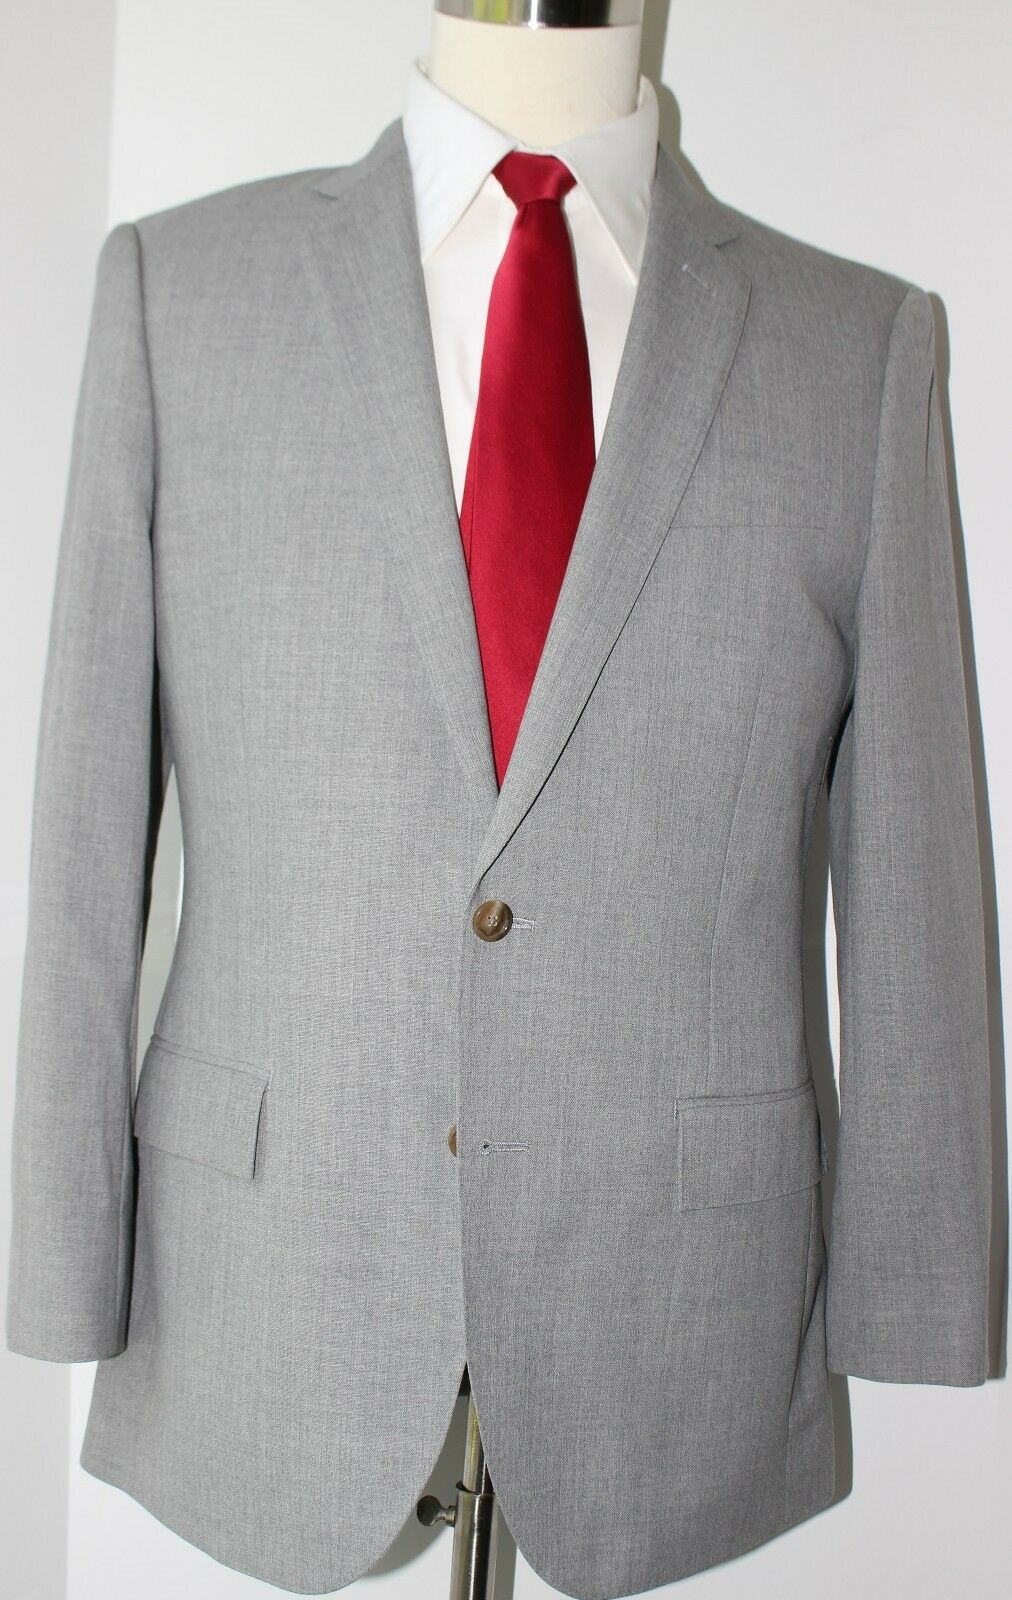 J. Crew Ludlow grau Side Vented Two Button Wool Suit 40 R Slim 36 31 Flat Pants